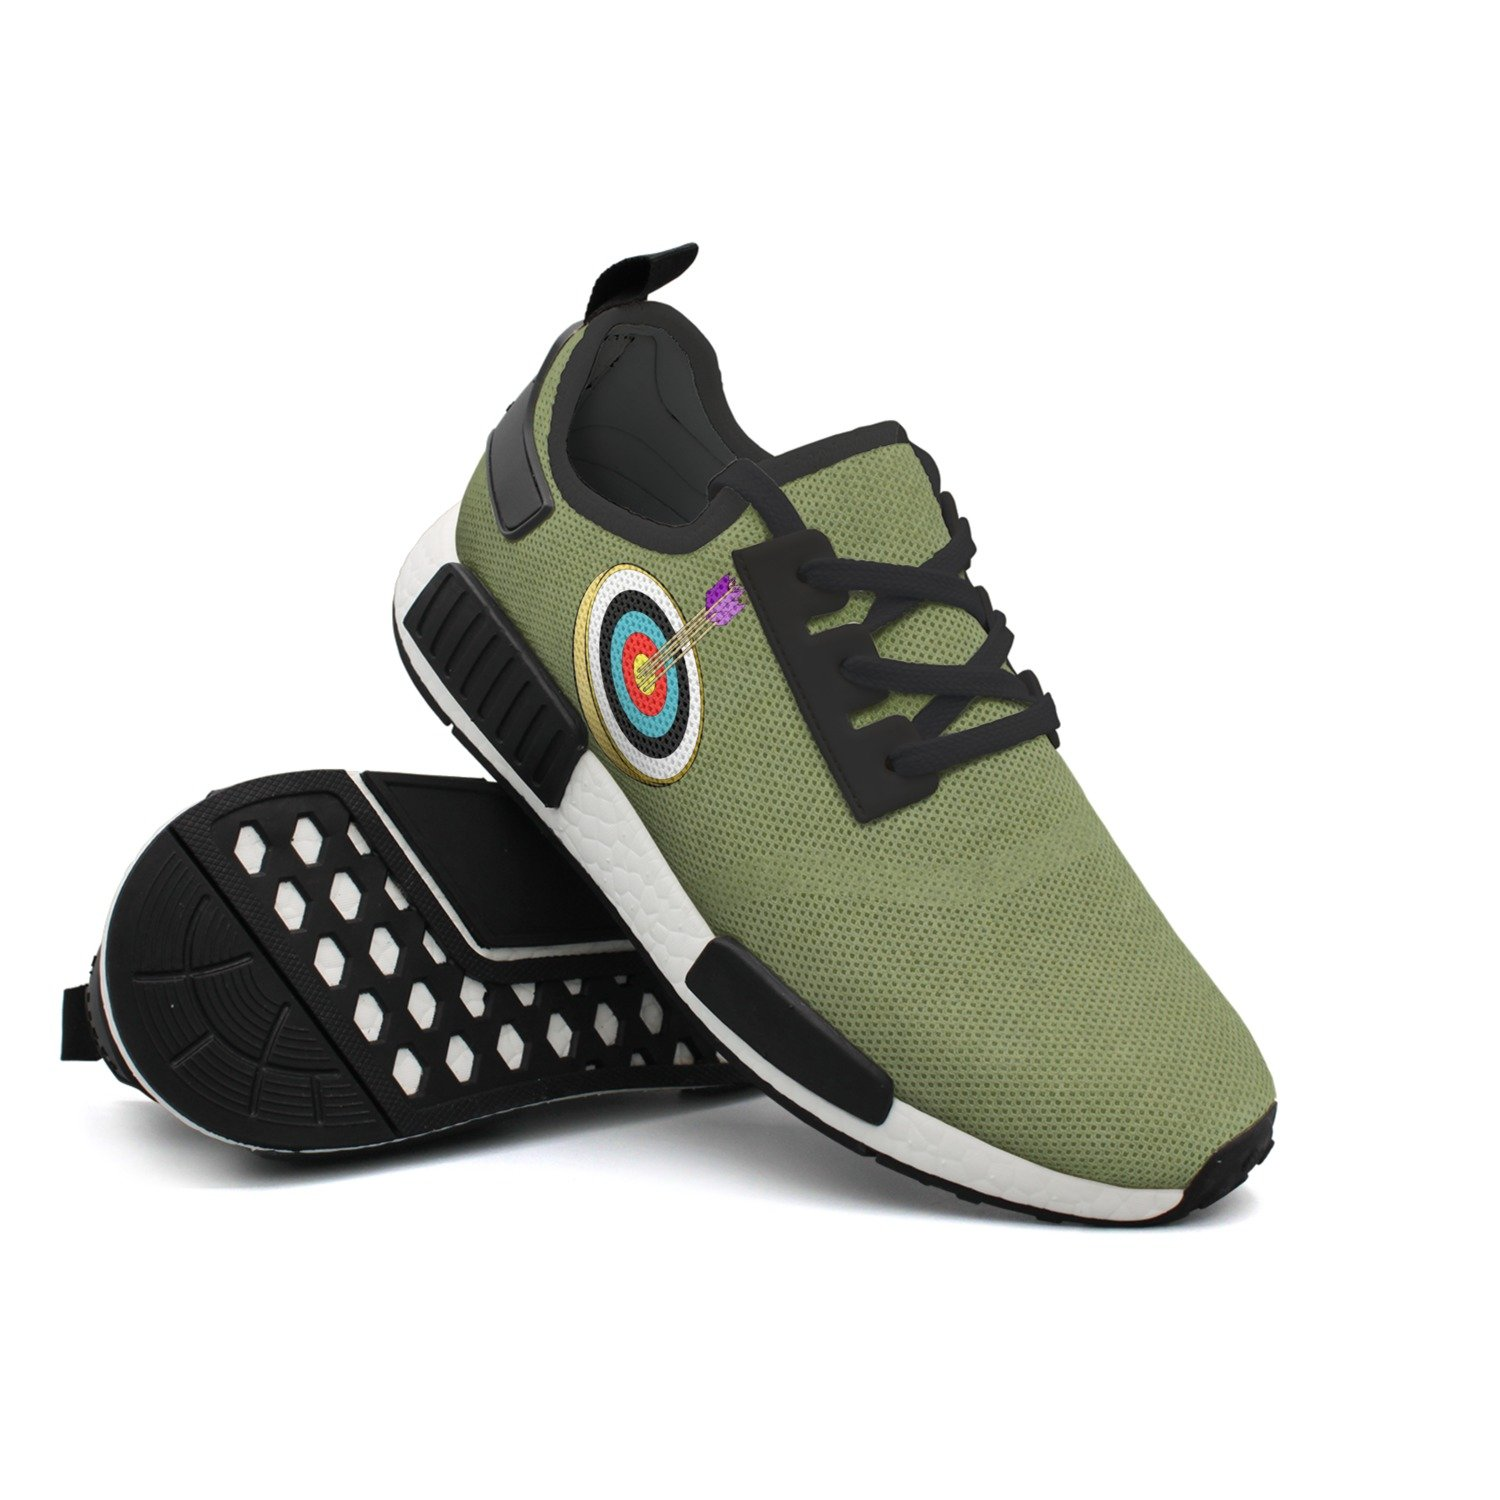 2073dc049b9295 Amazon.com  YCFTA Arrows And Target Clip Art Women Casual Shoes Canvas  Sports Spring Gym  Sports   Outdoors